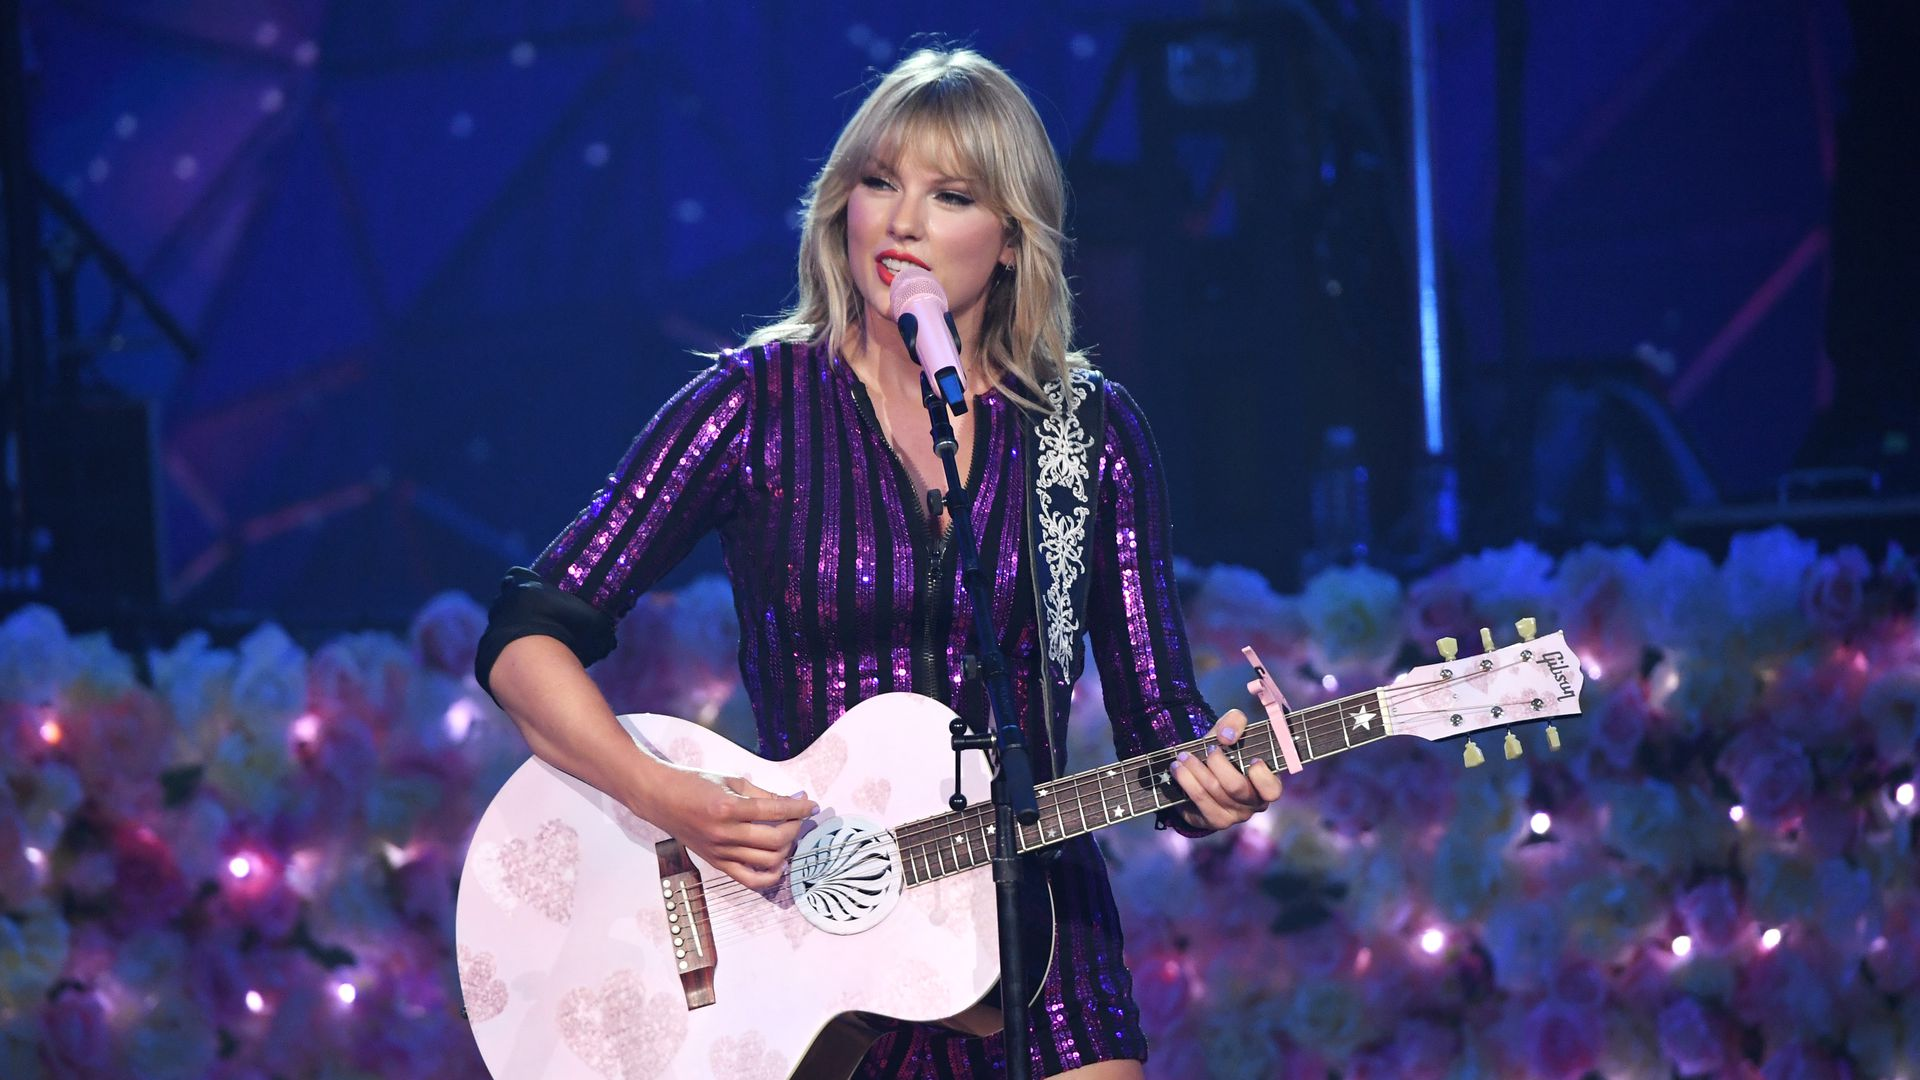 Taylor Swift will re-record old songs after Scooter Braun's Big Machine deal